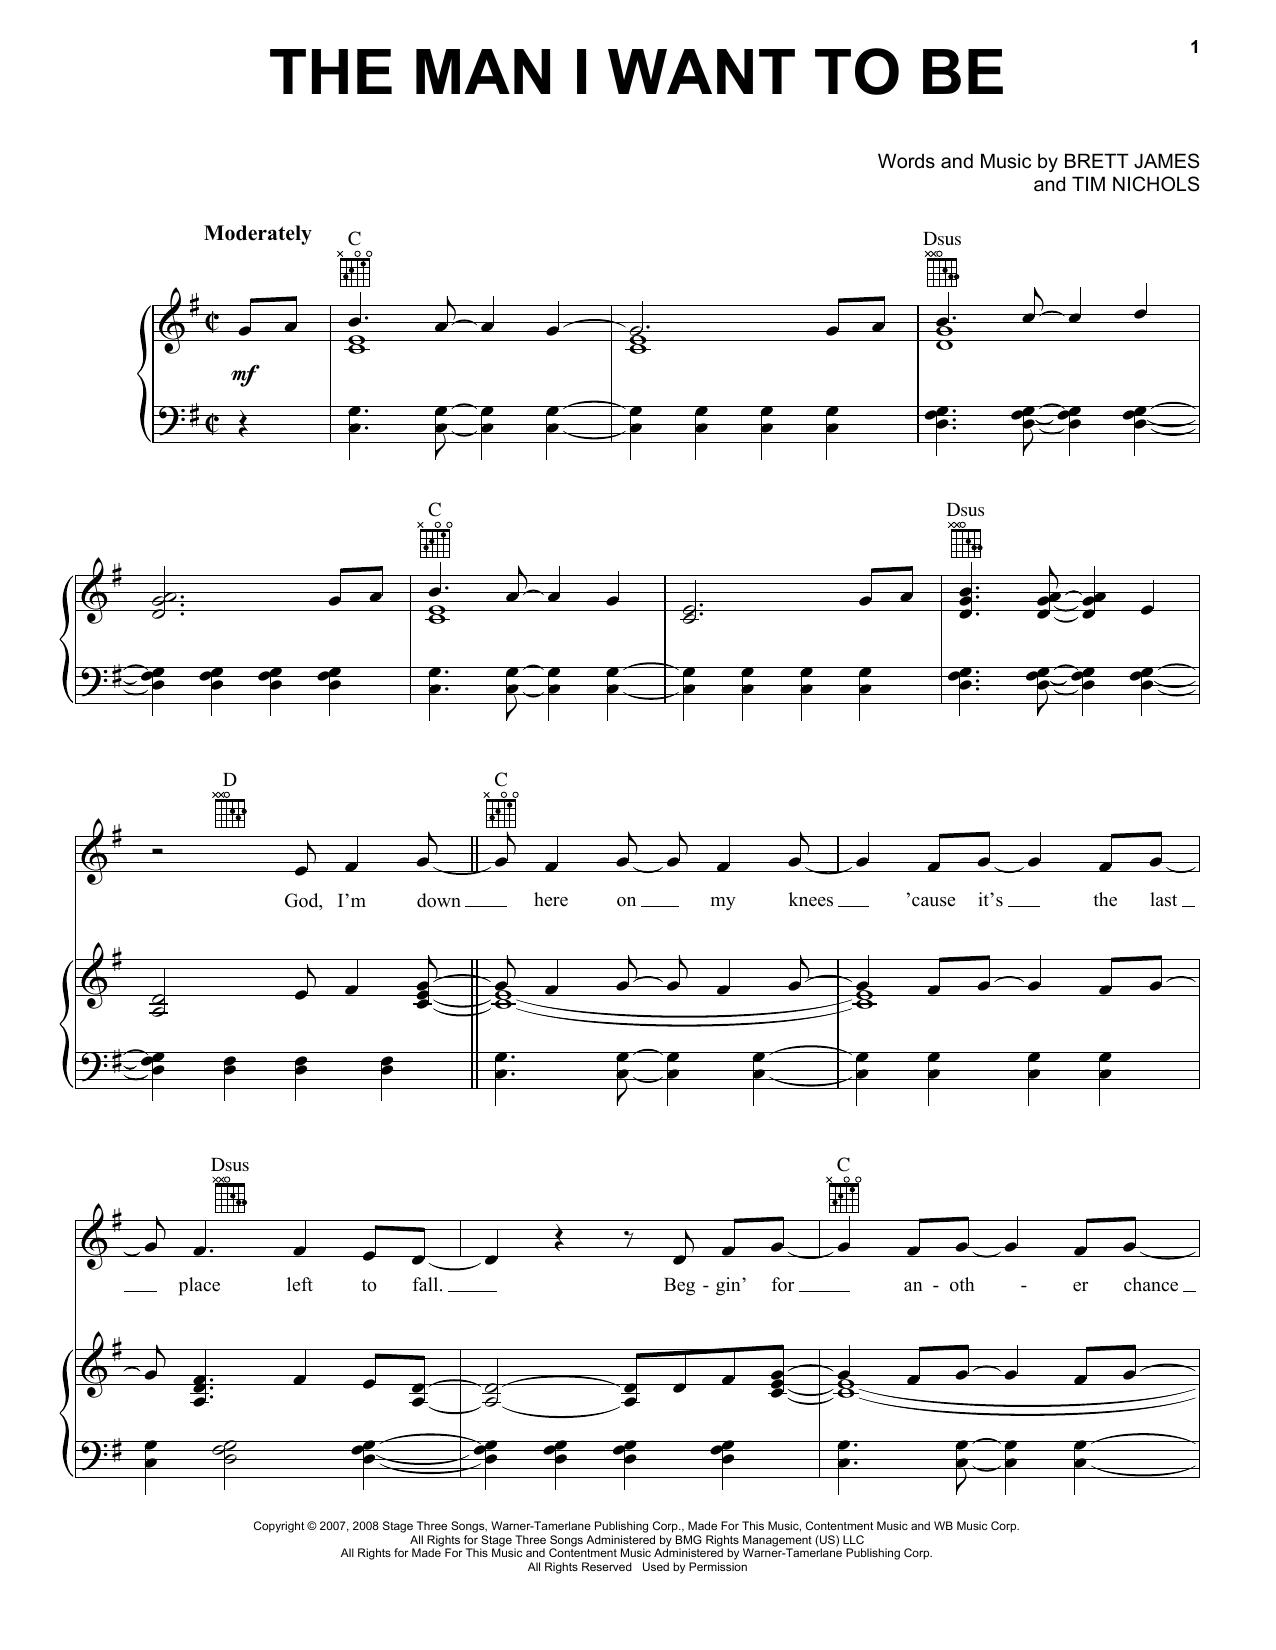 The Man I Want To Be sheet music